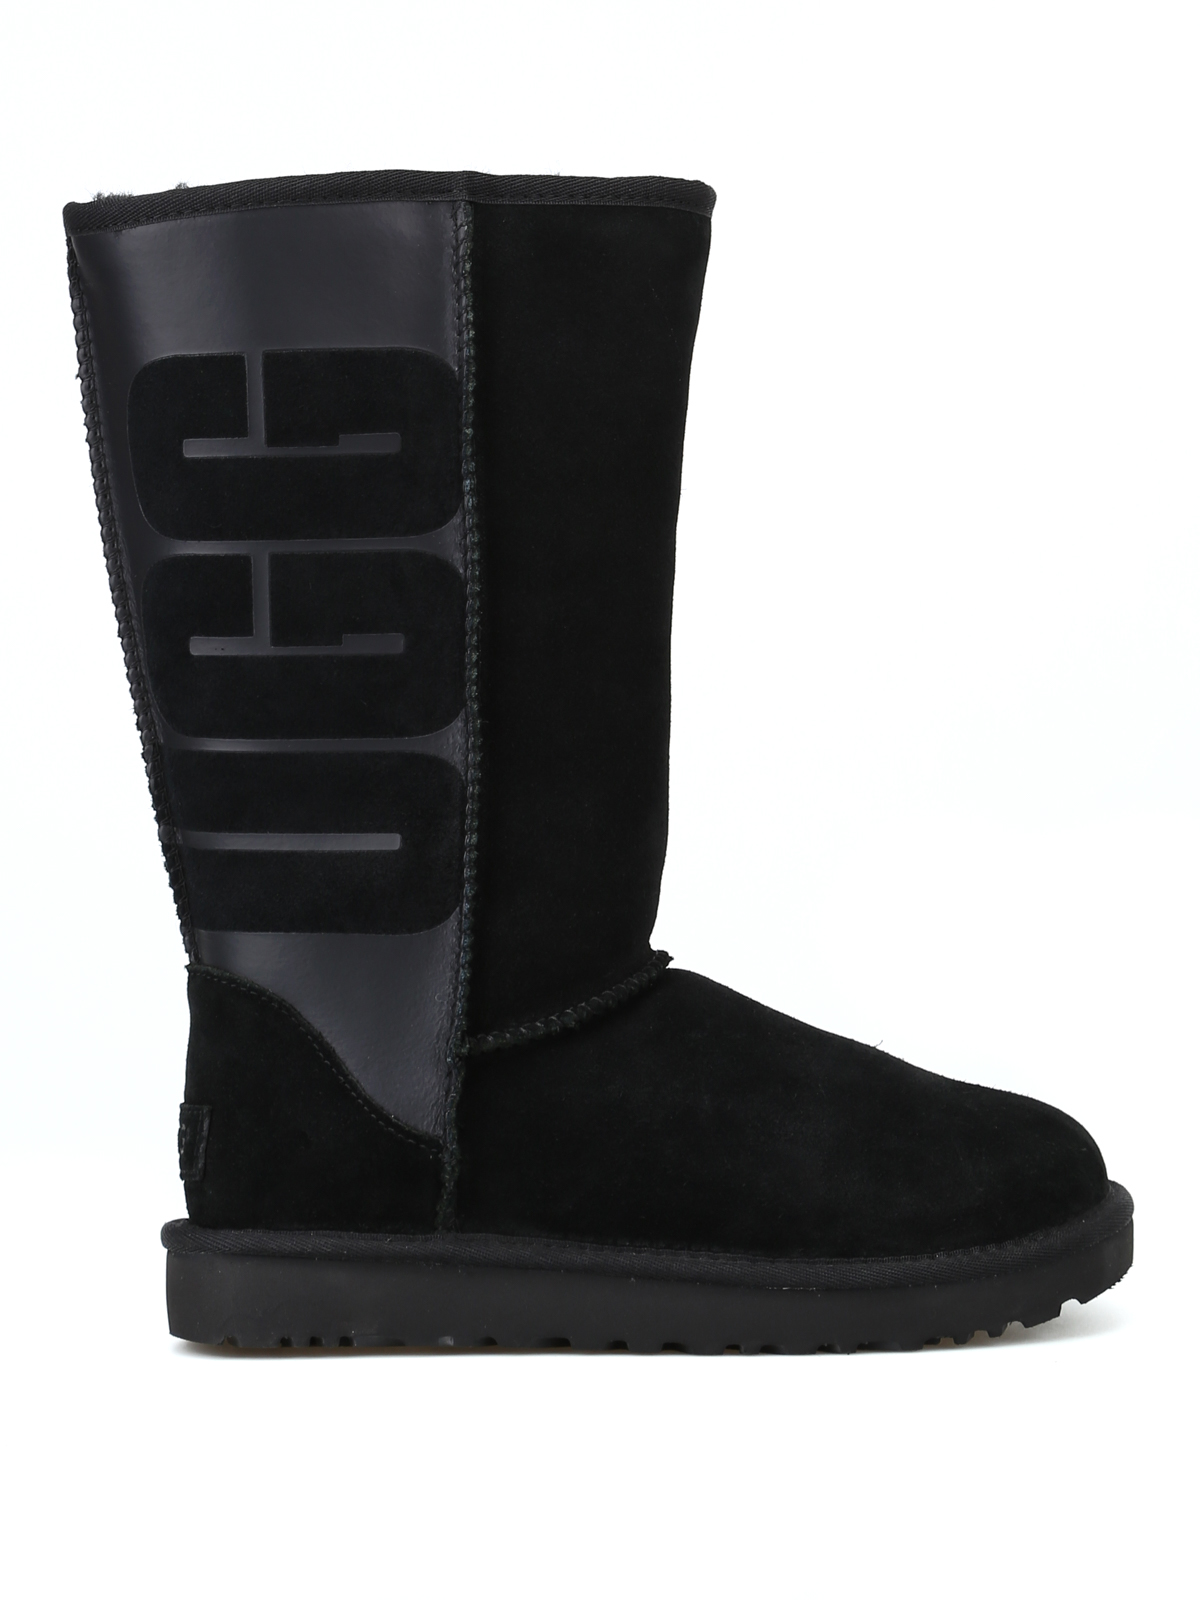 Classic Tall Ugg Rubber black boots